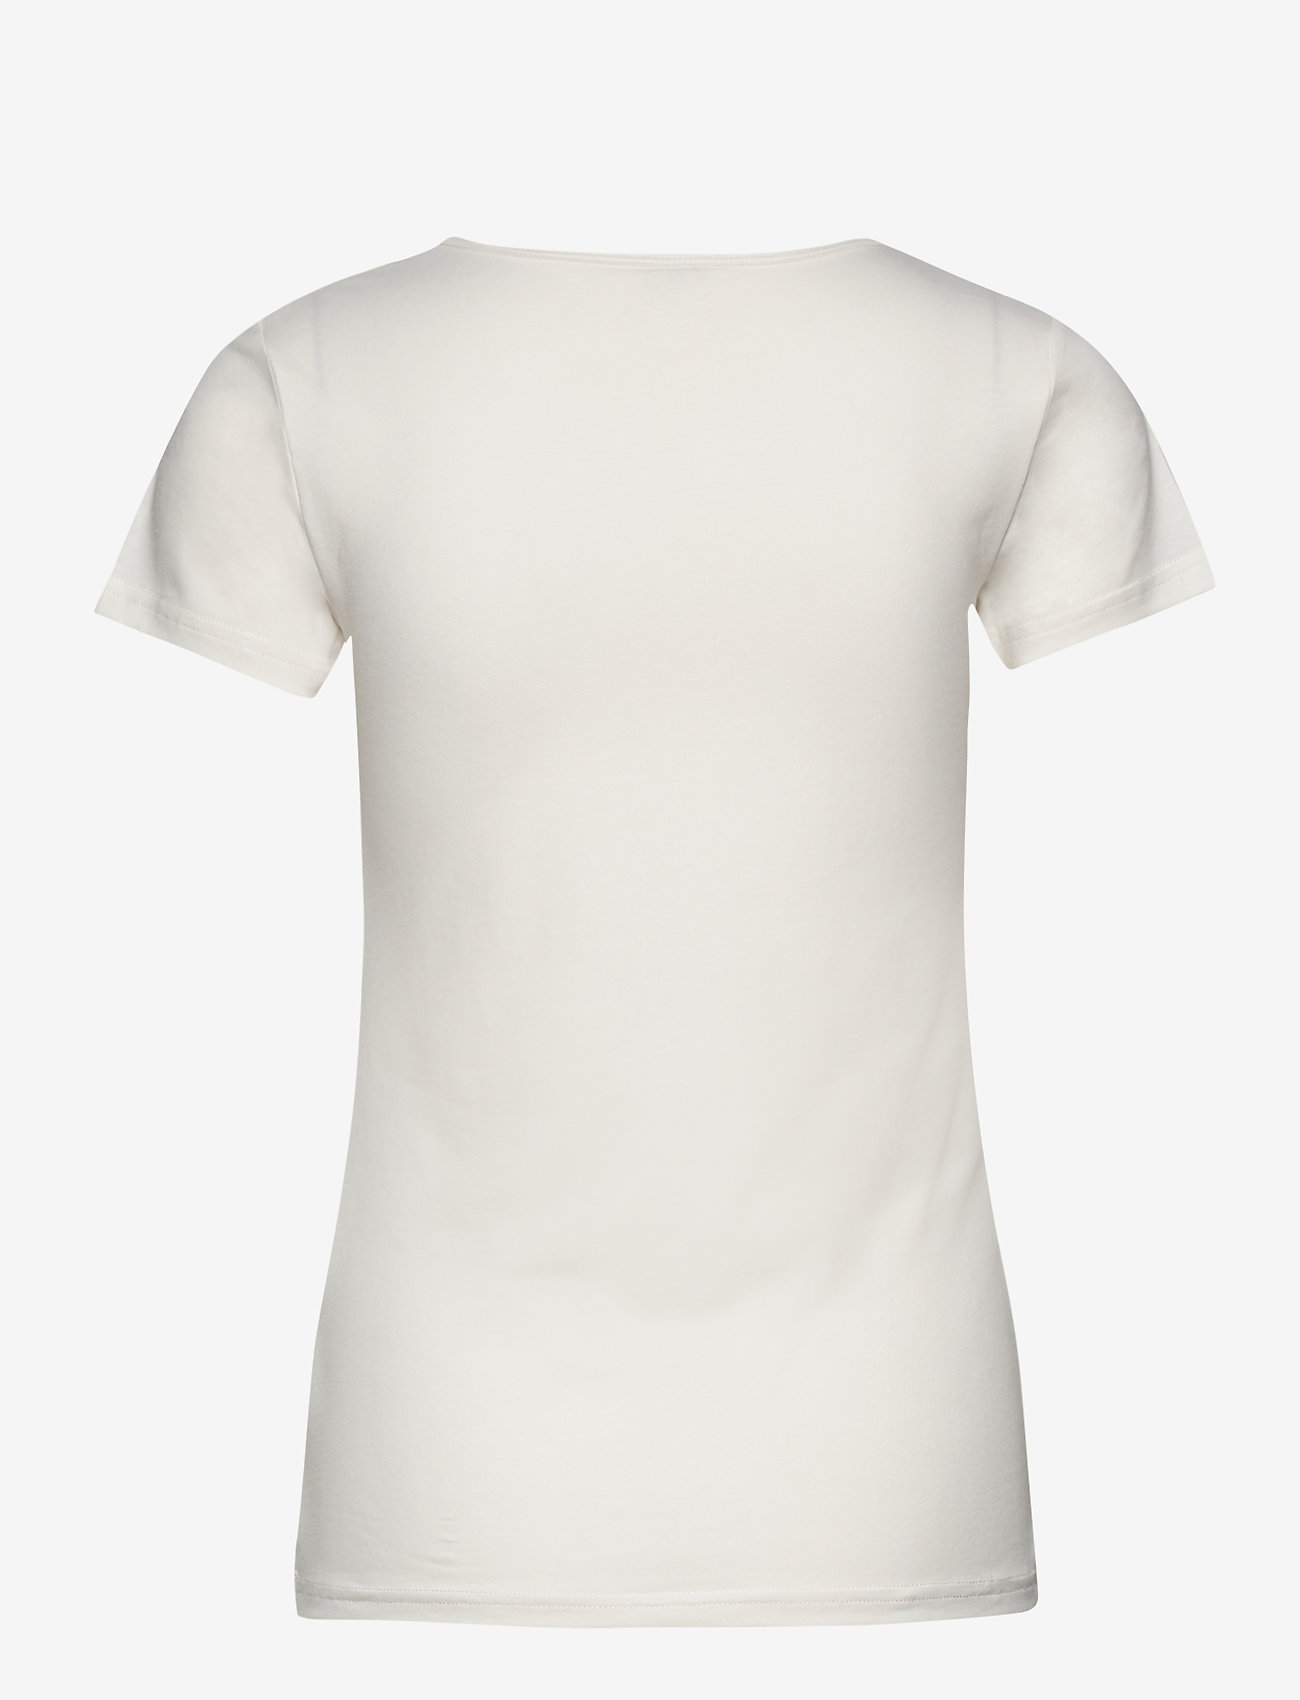 Soyaconcept - SC-PYLLE - t-shirt & tops - offwhite - 1